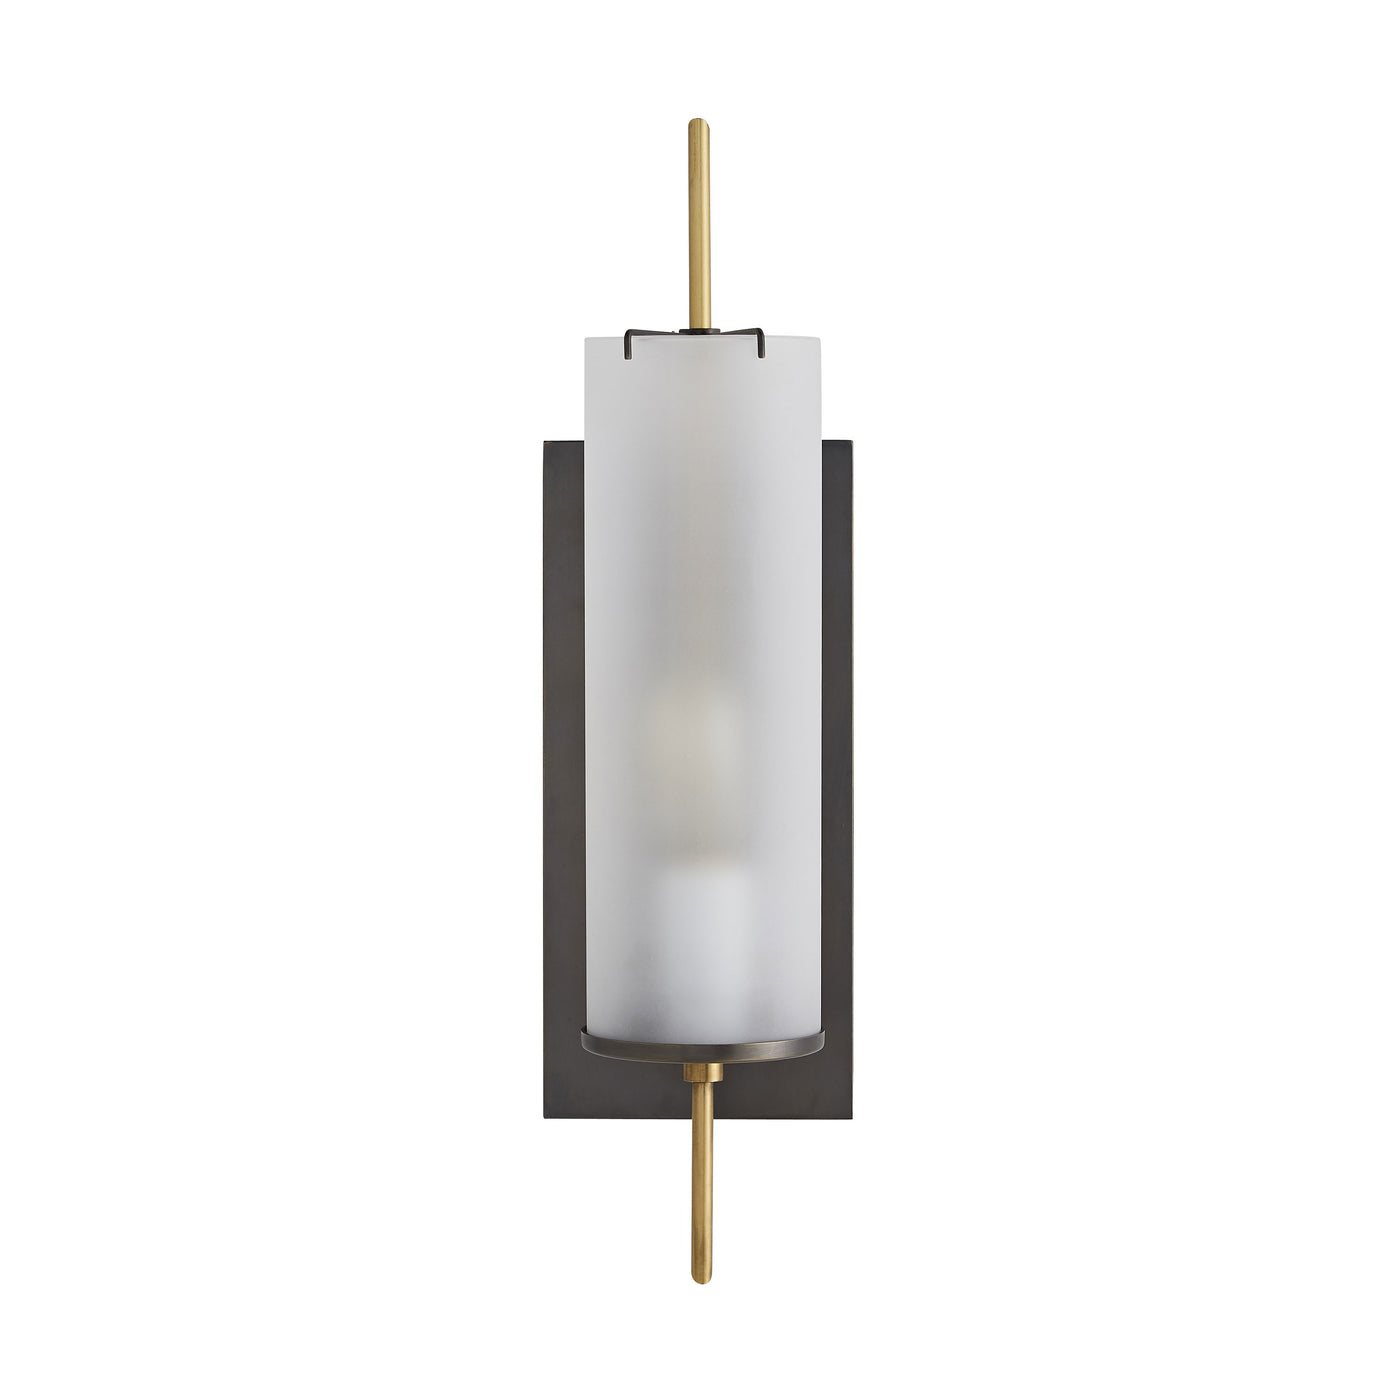 arteriors stefan wall sconce bronze frosted glass